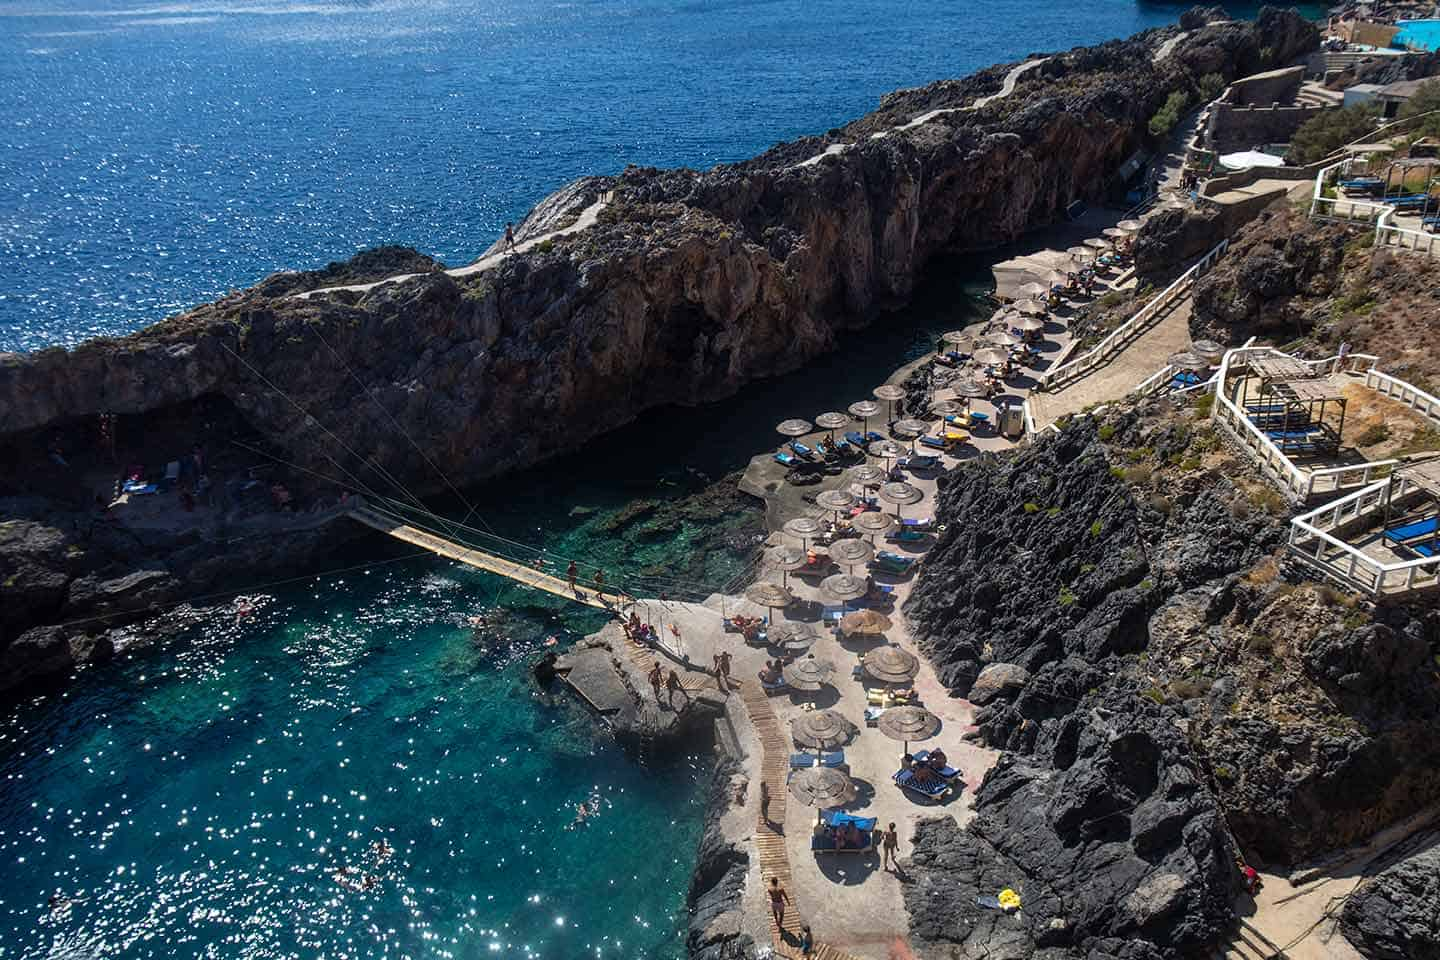 Image of the view of Kalypso Beach from the cliff path above